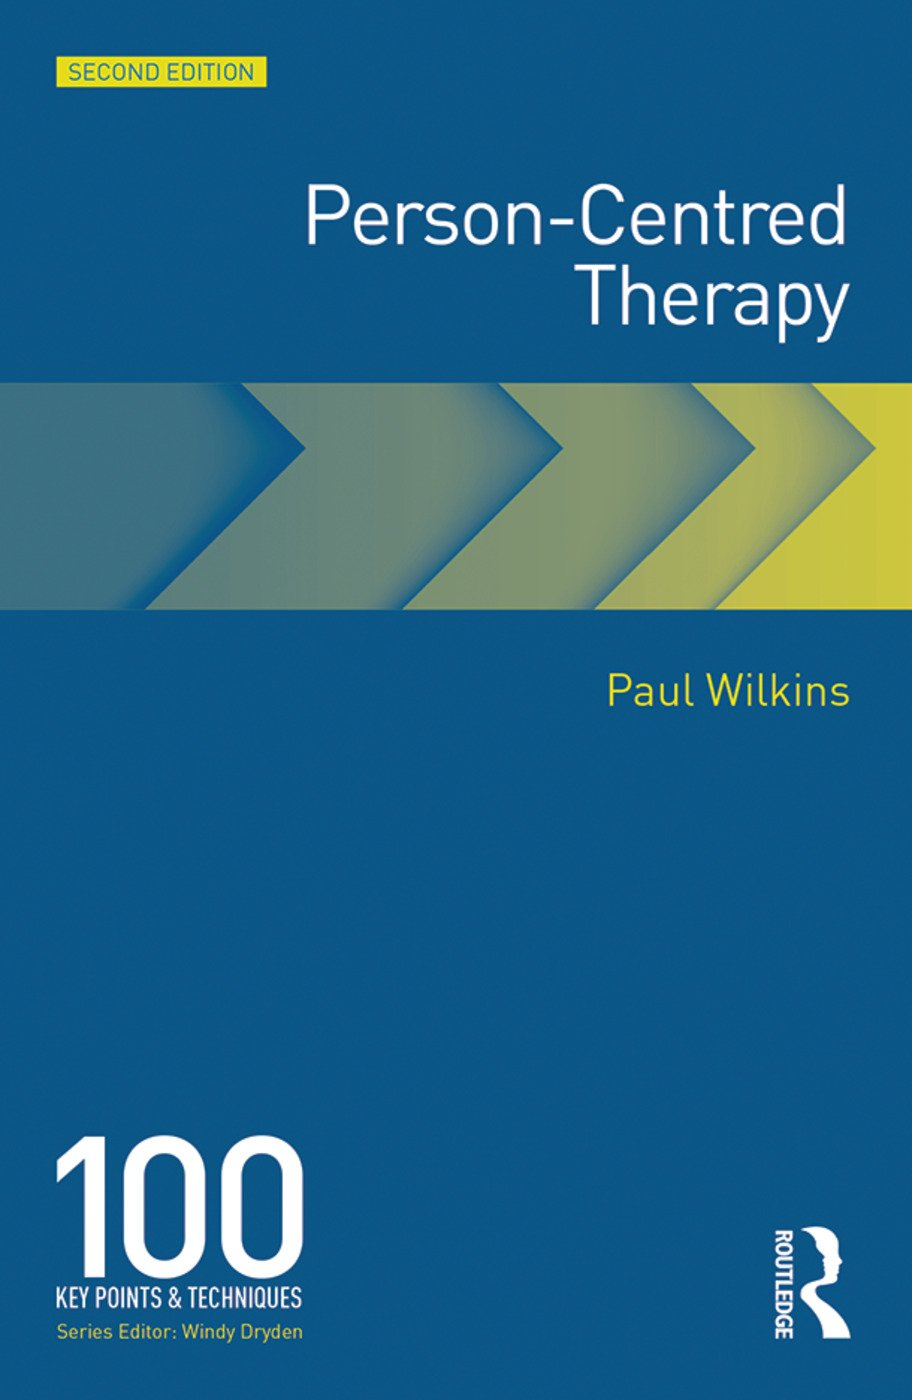 'The ideal person-centred therapist is first of all empathic.' 'Being empathic is a complex, demanding, strong yet subtle and gentle way of being'